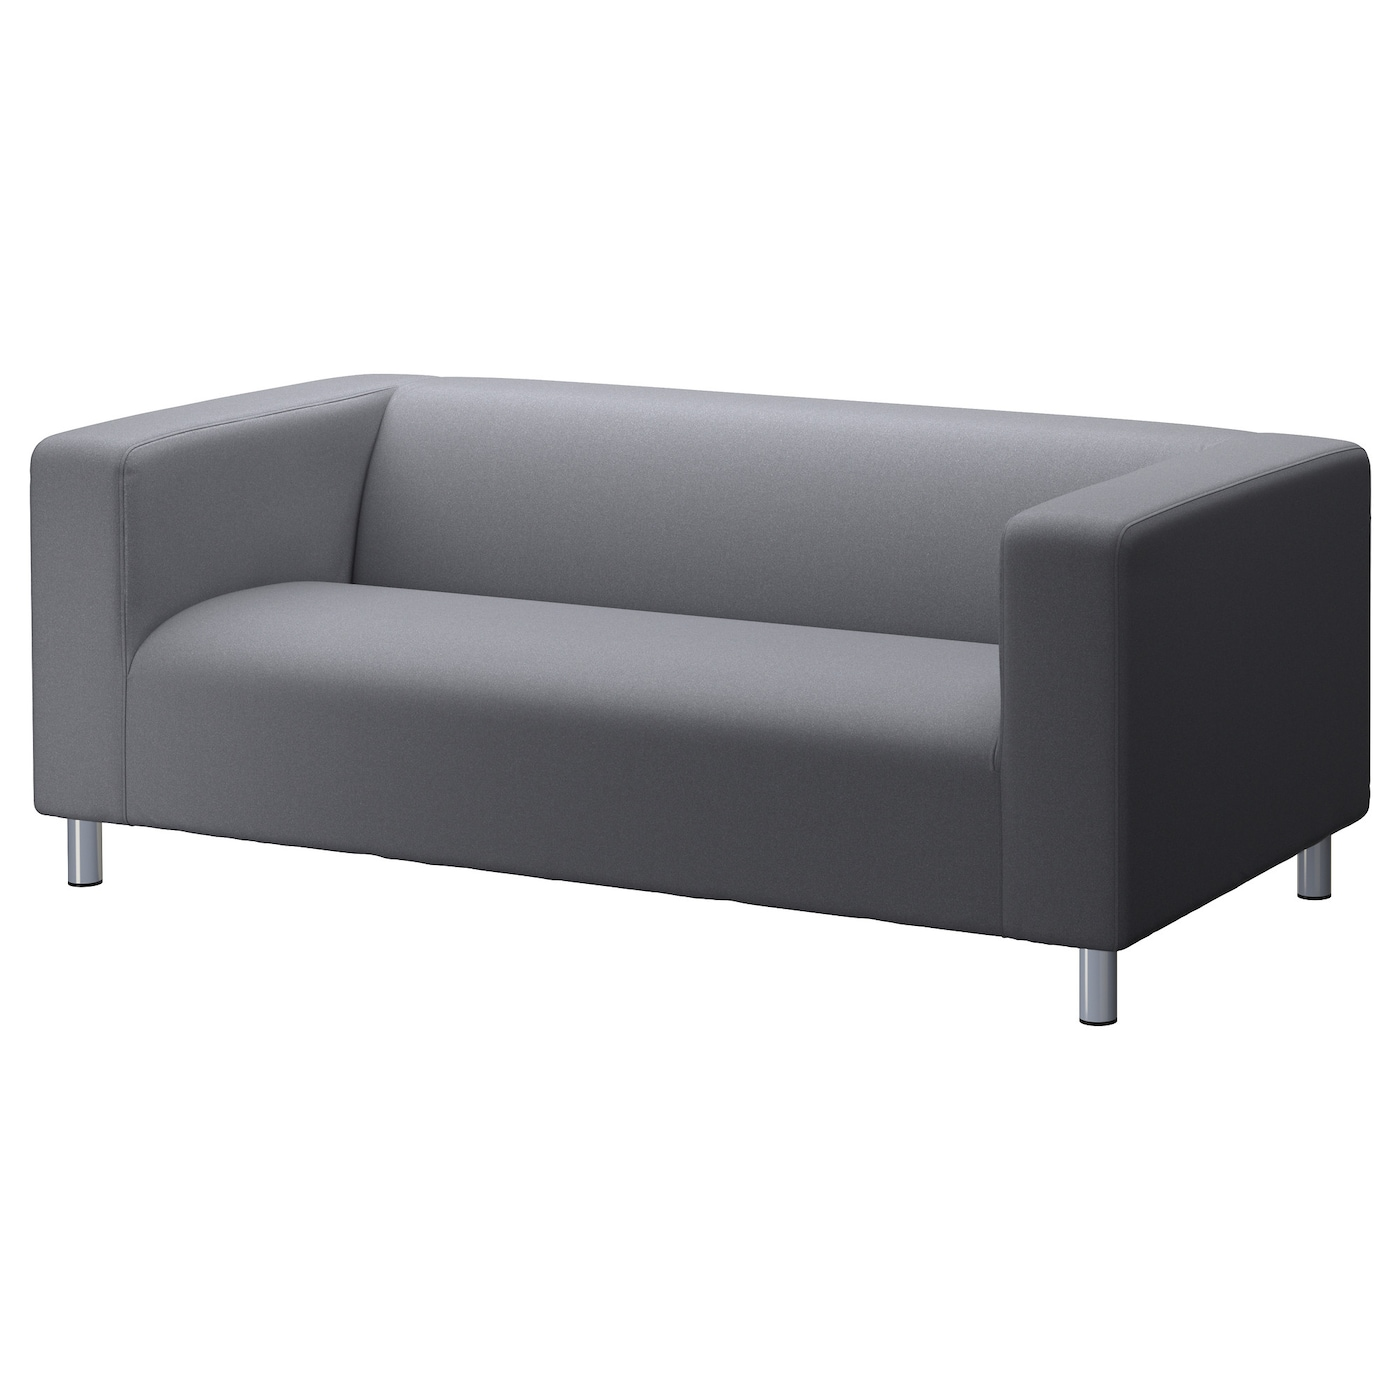 Sofas armchairs ikea for Ikea sofa set